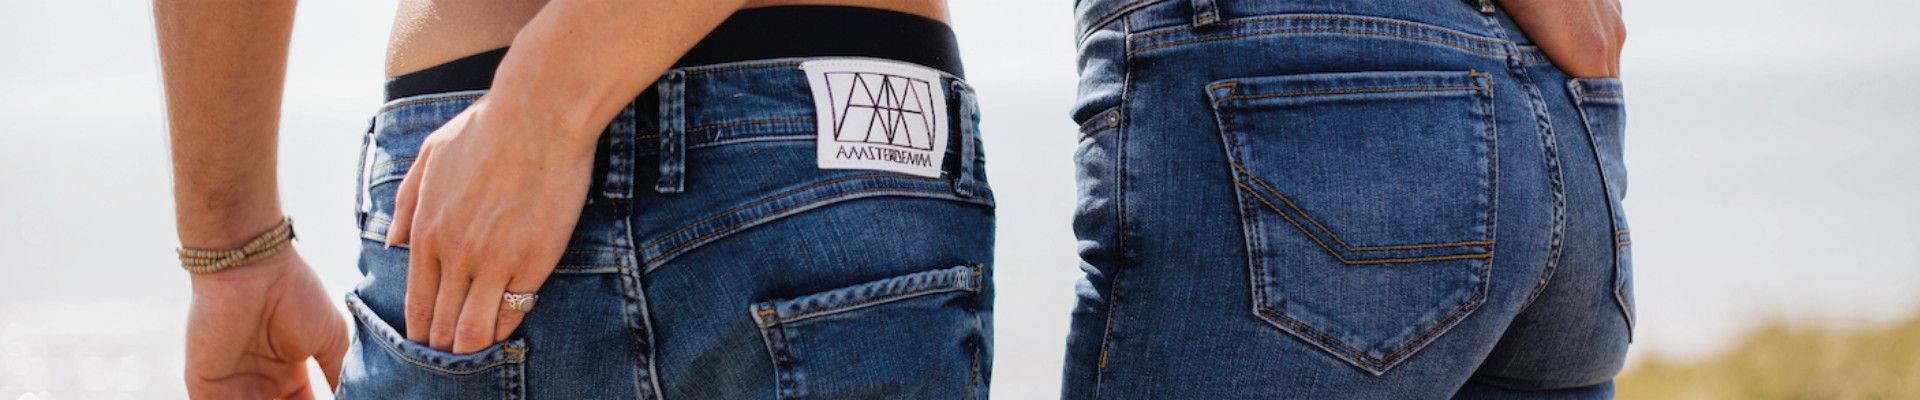 Amsterdenim jeans - premium denim from the city of freedom